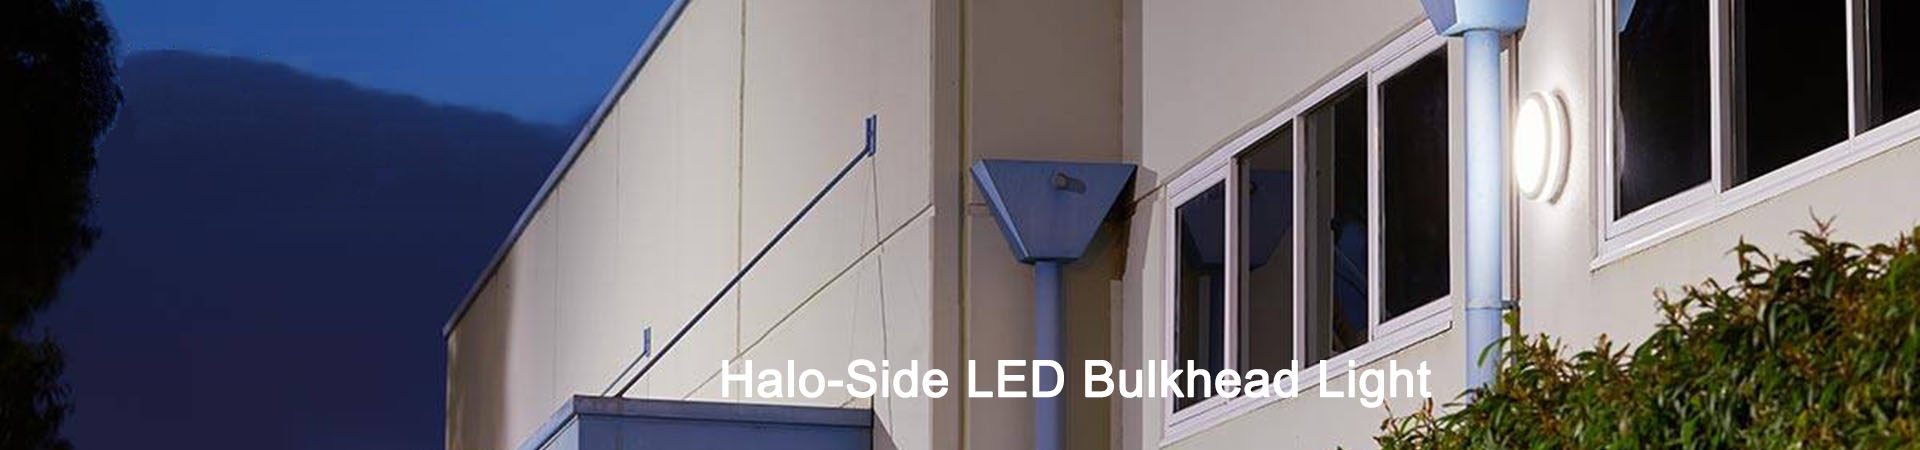 Halo Side LED Bulkhead Lighting